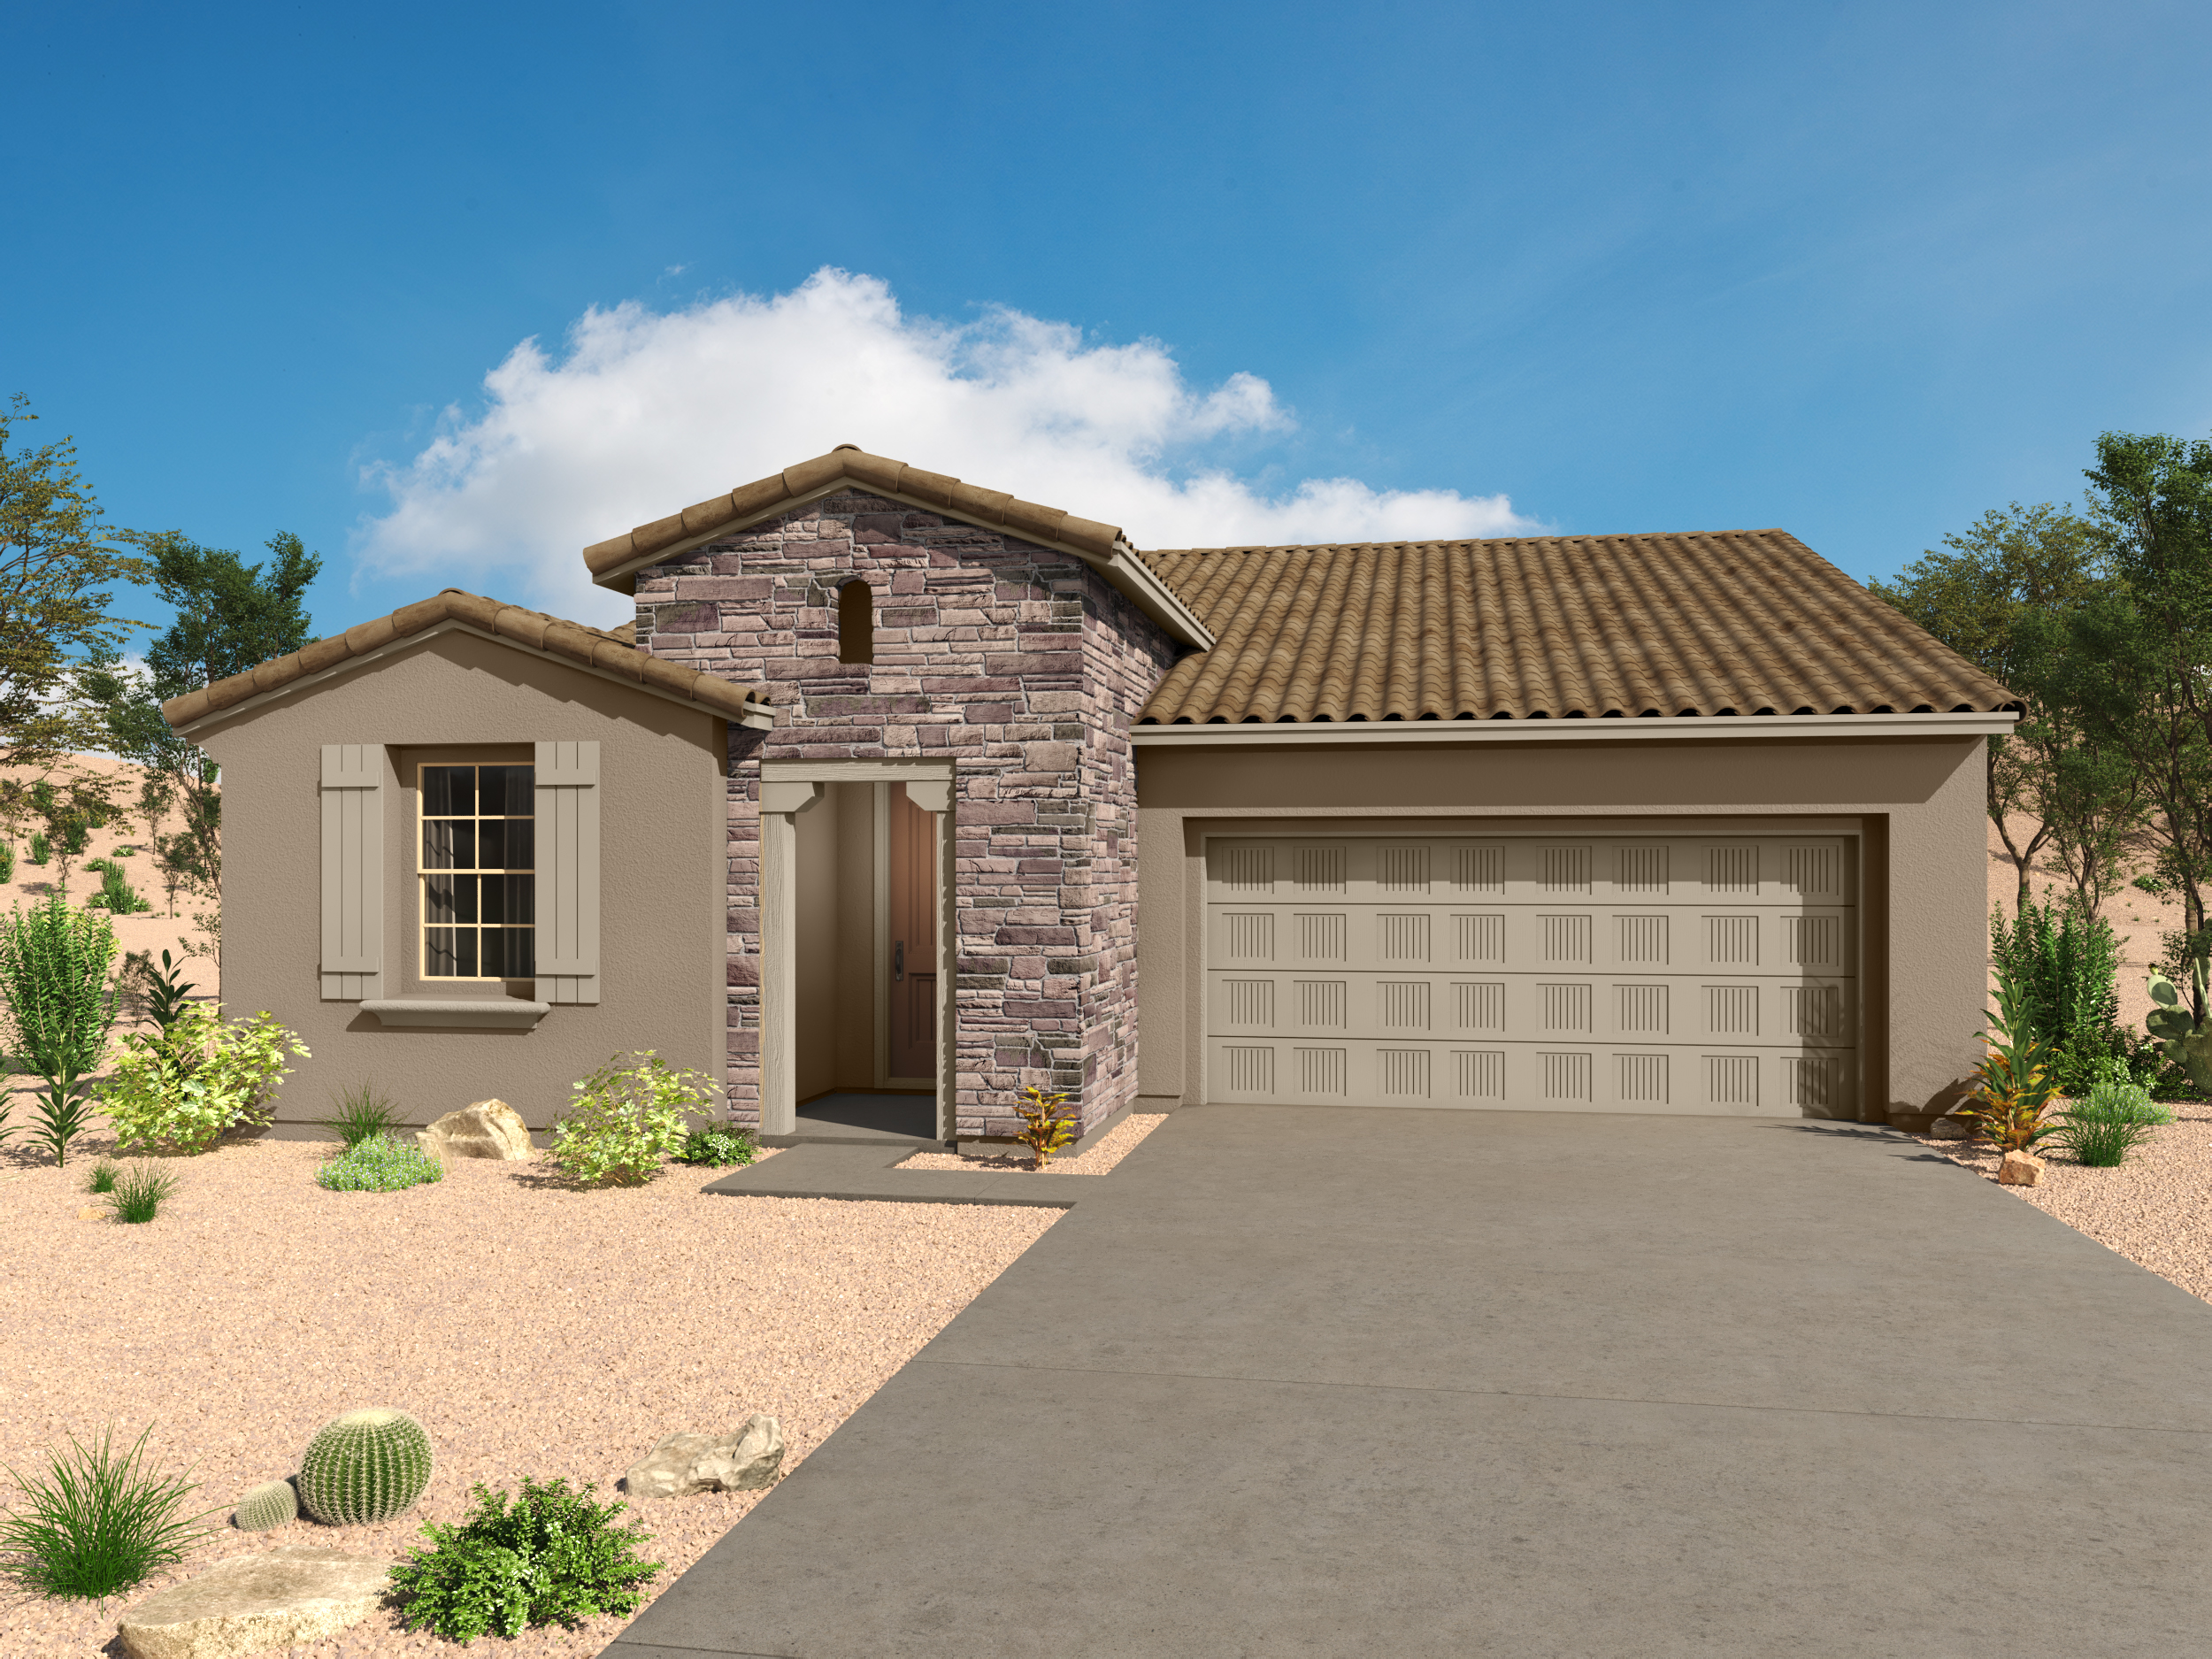 Emory Plan Elevation Front at Desert Oasis at Twin Peaks in Marana Arizona by Mattamy Homes